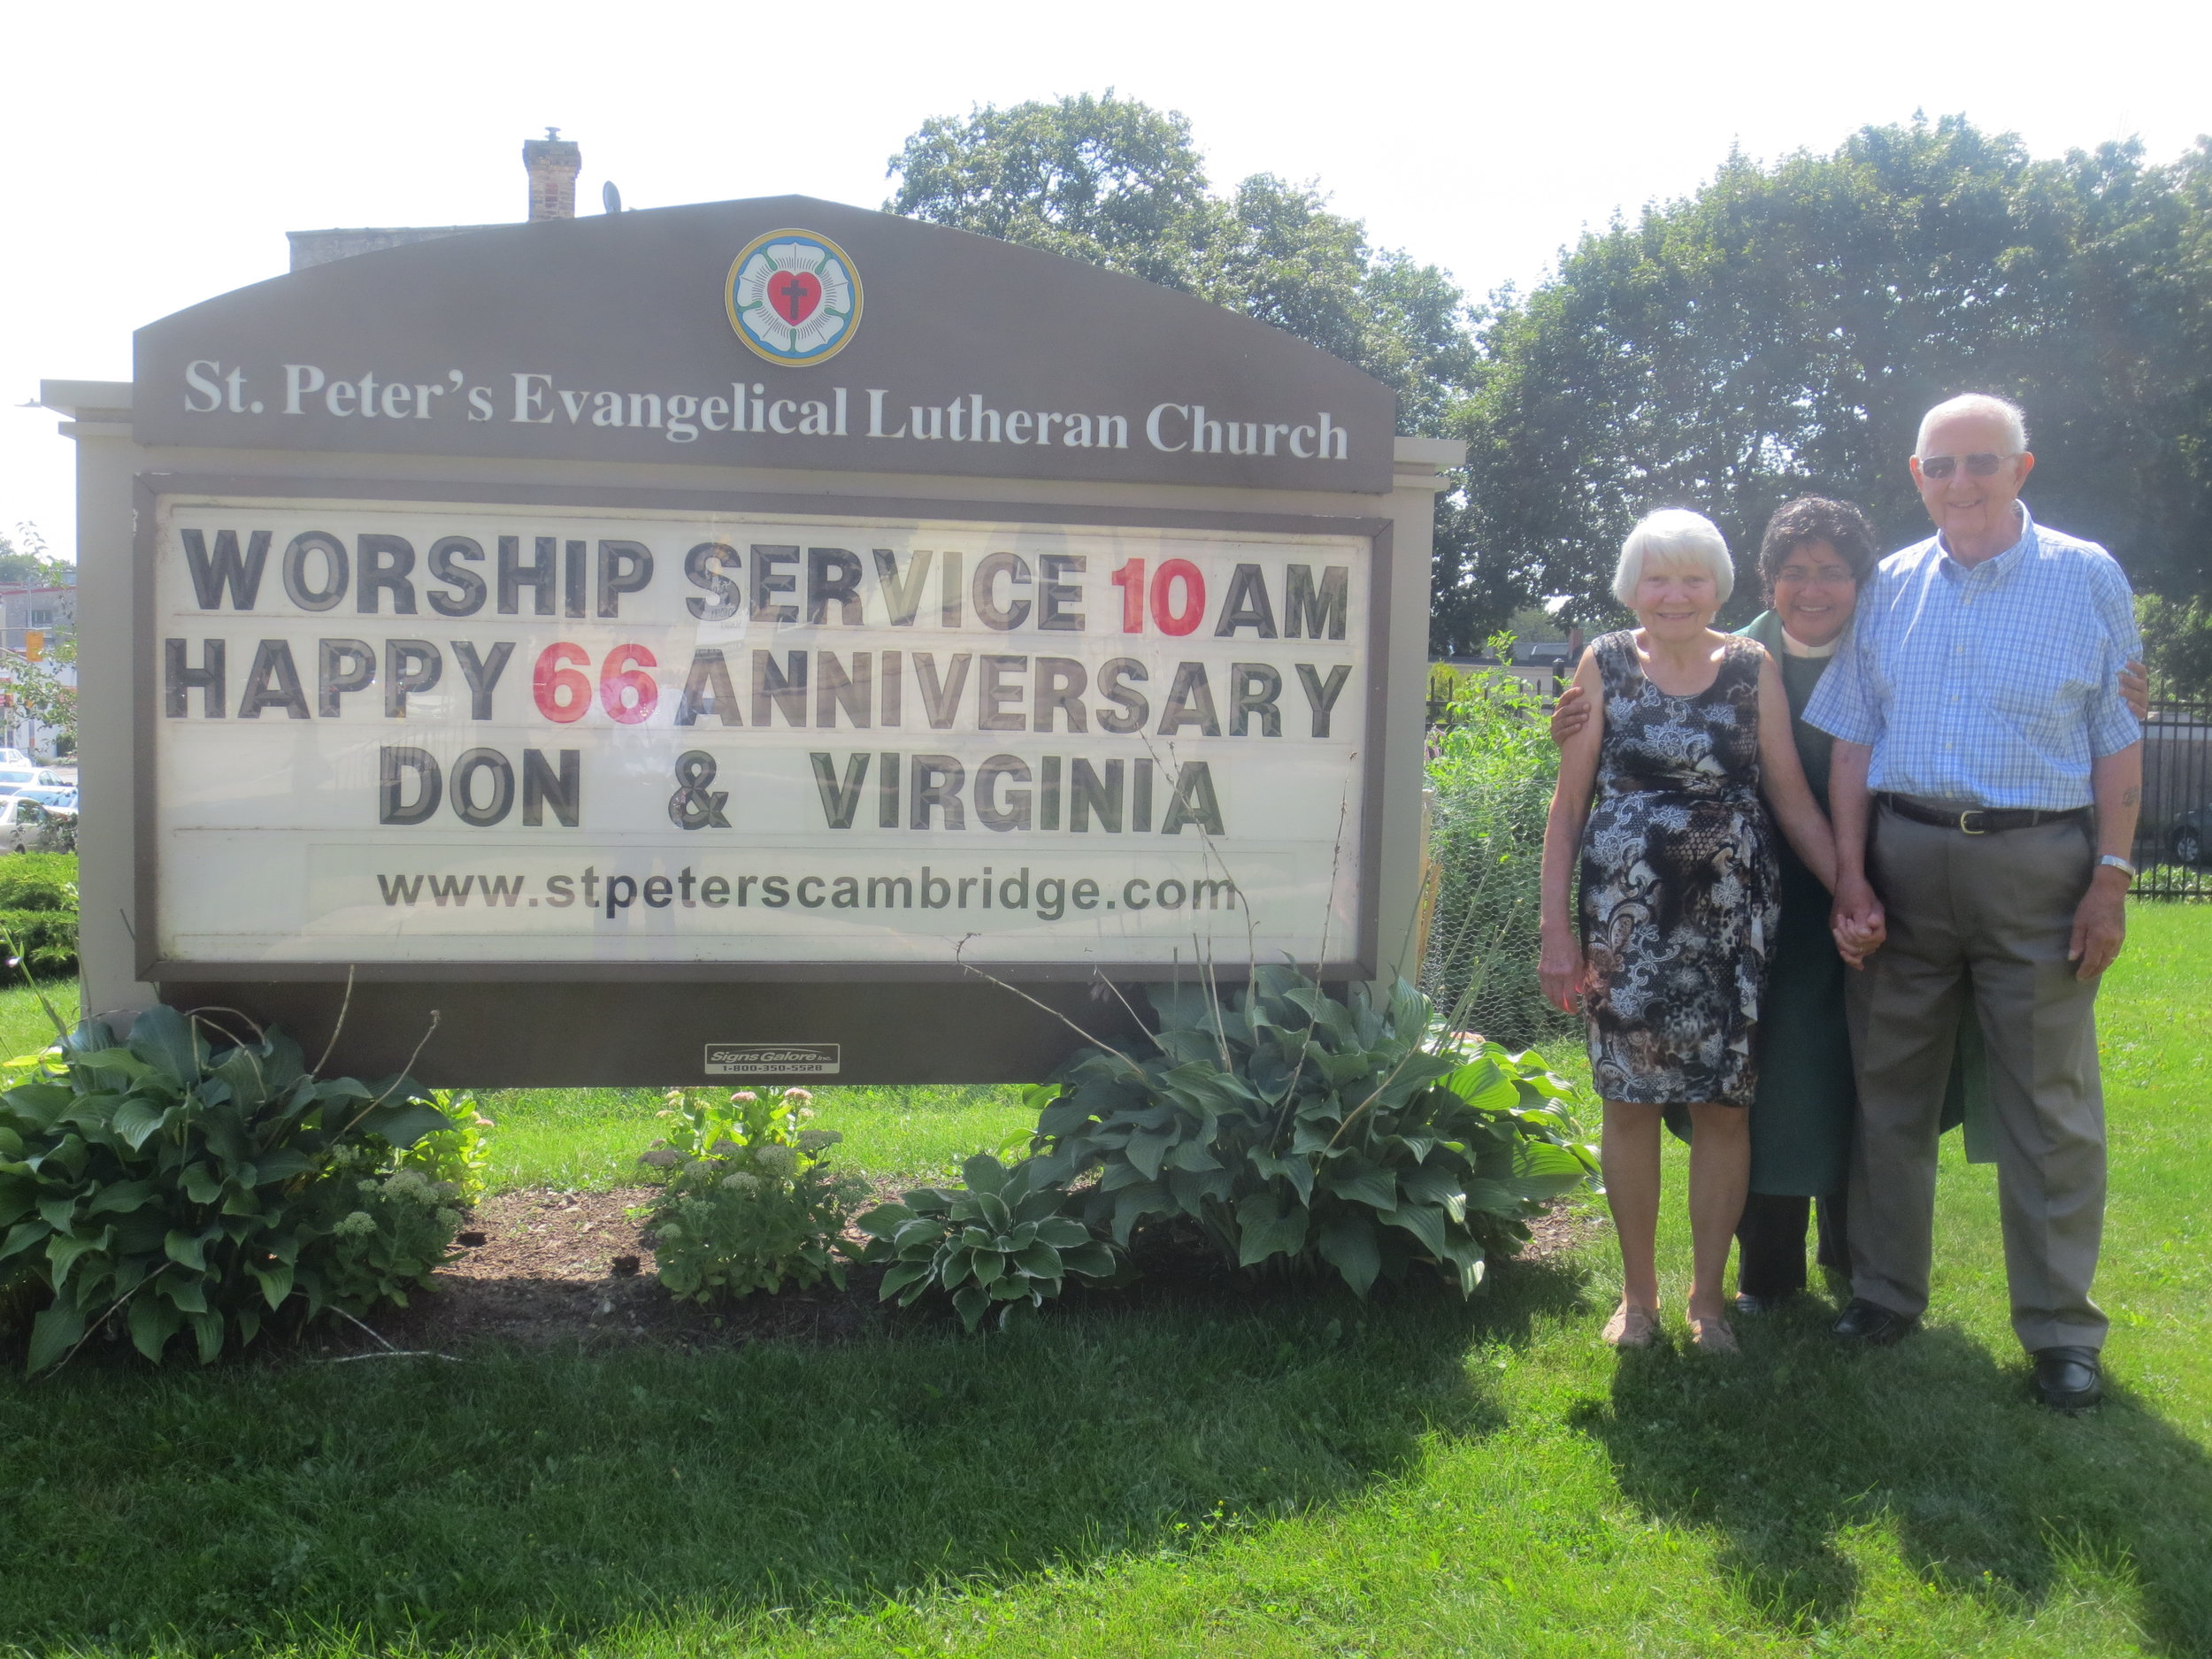 Happy 66th wedding anniversary to Virginia and Don Davidson. Pictured here with Pastor Janaki.